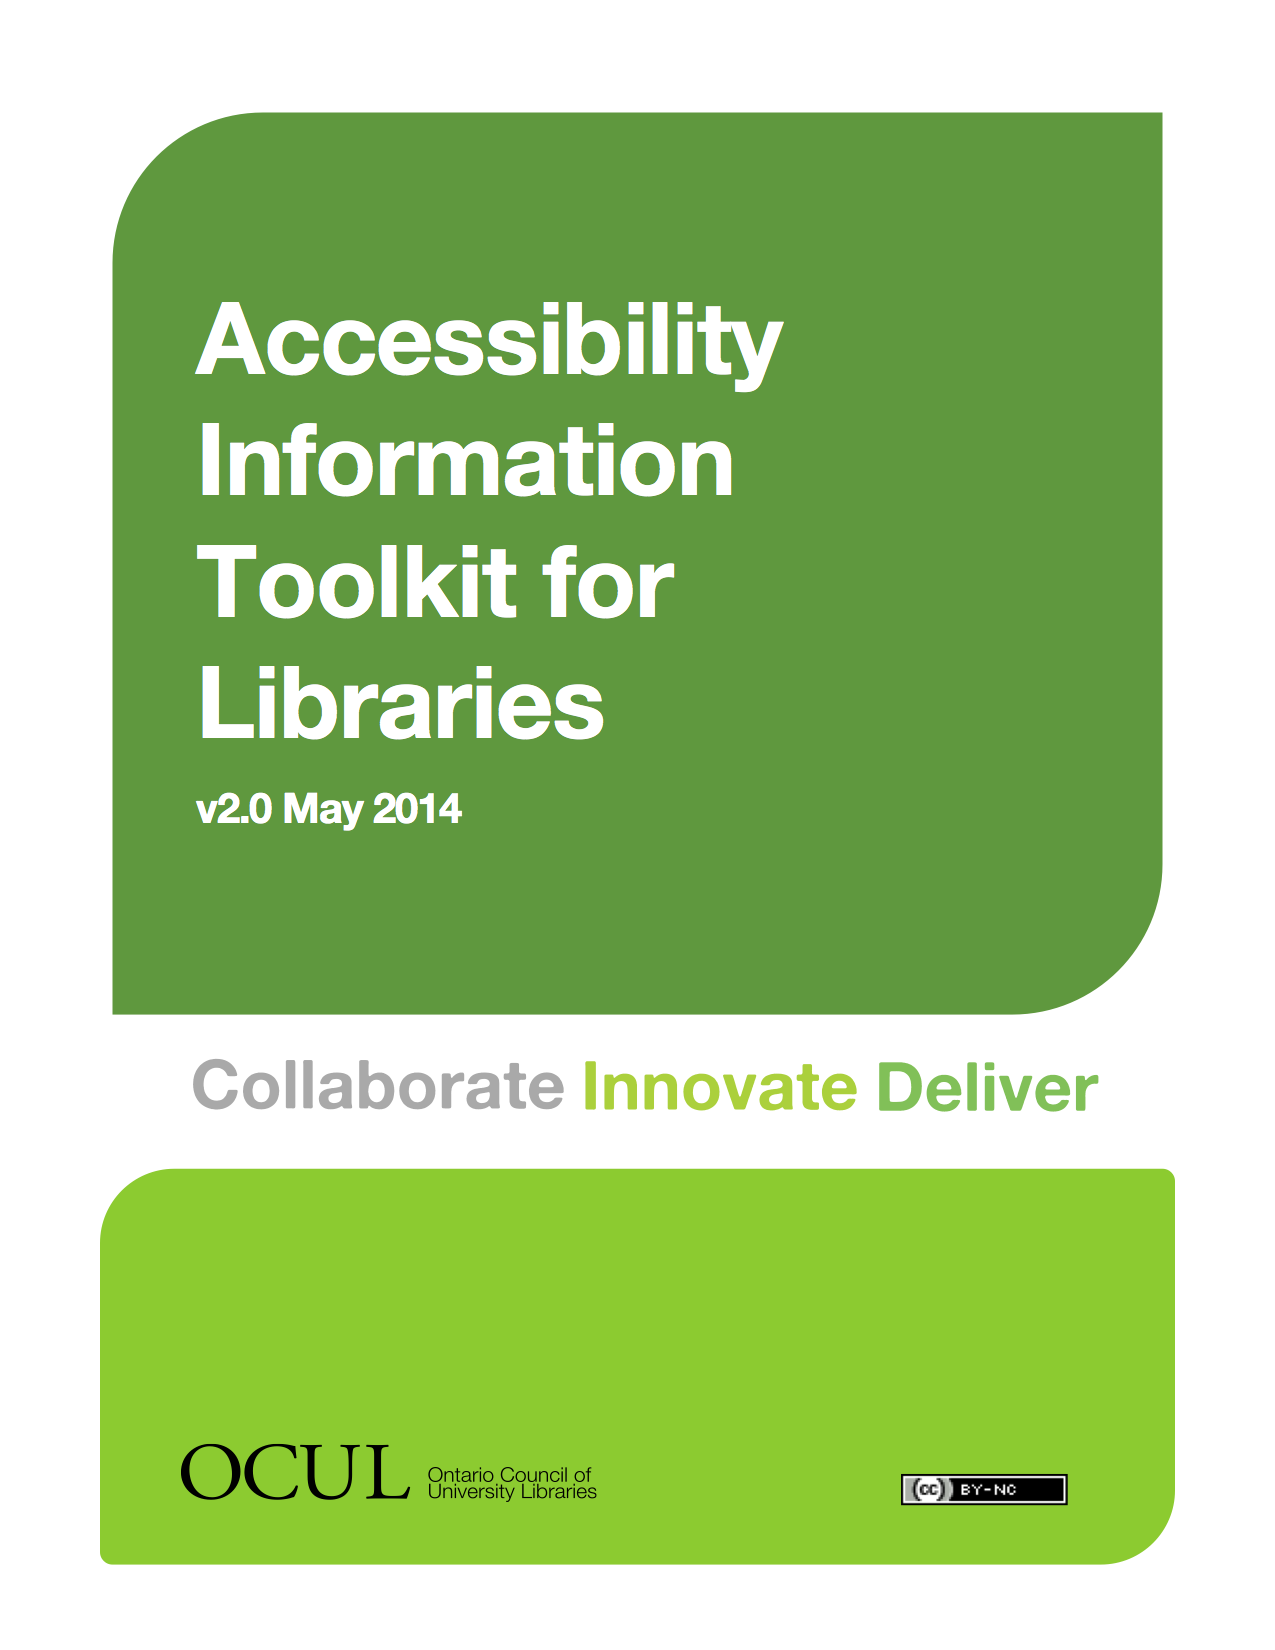 Thumbnail of Accessibility Toolkit cover page and table of contents